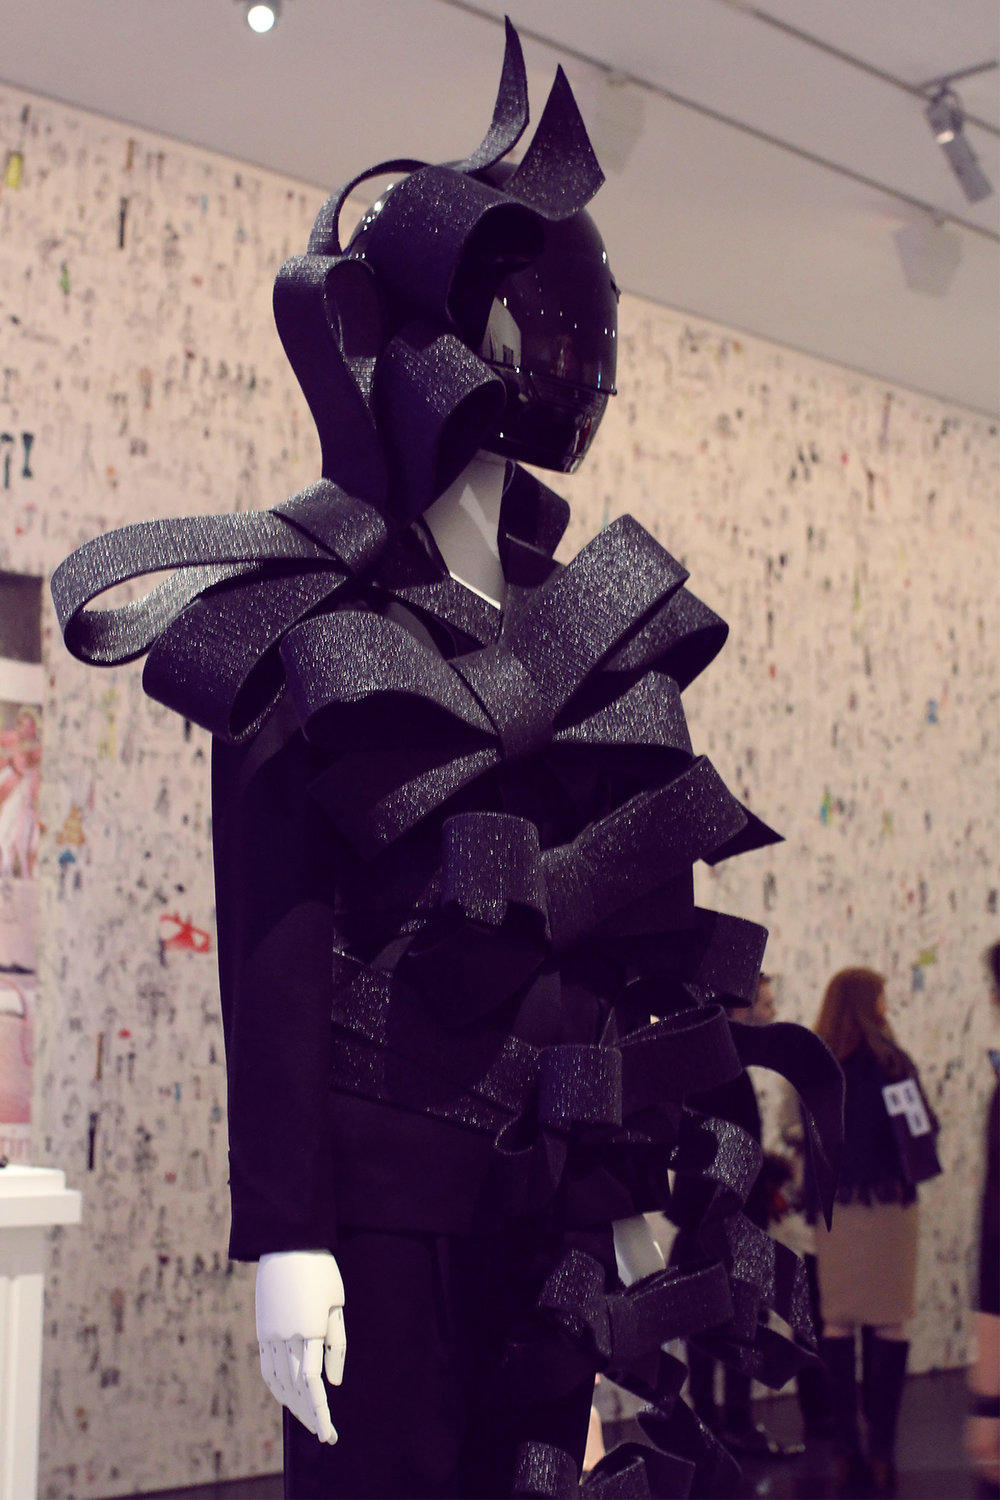 Viktor & Rolf Fashion Artists, NGV Australia